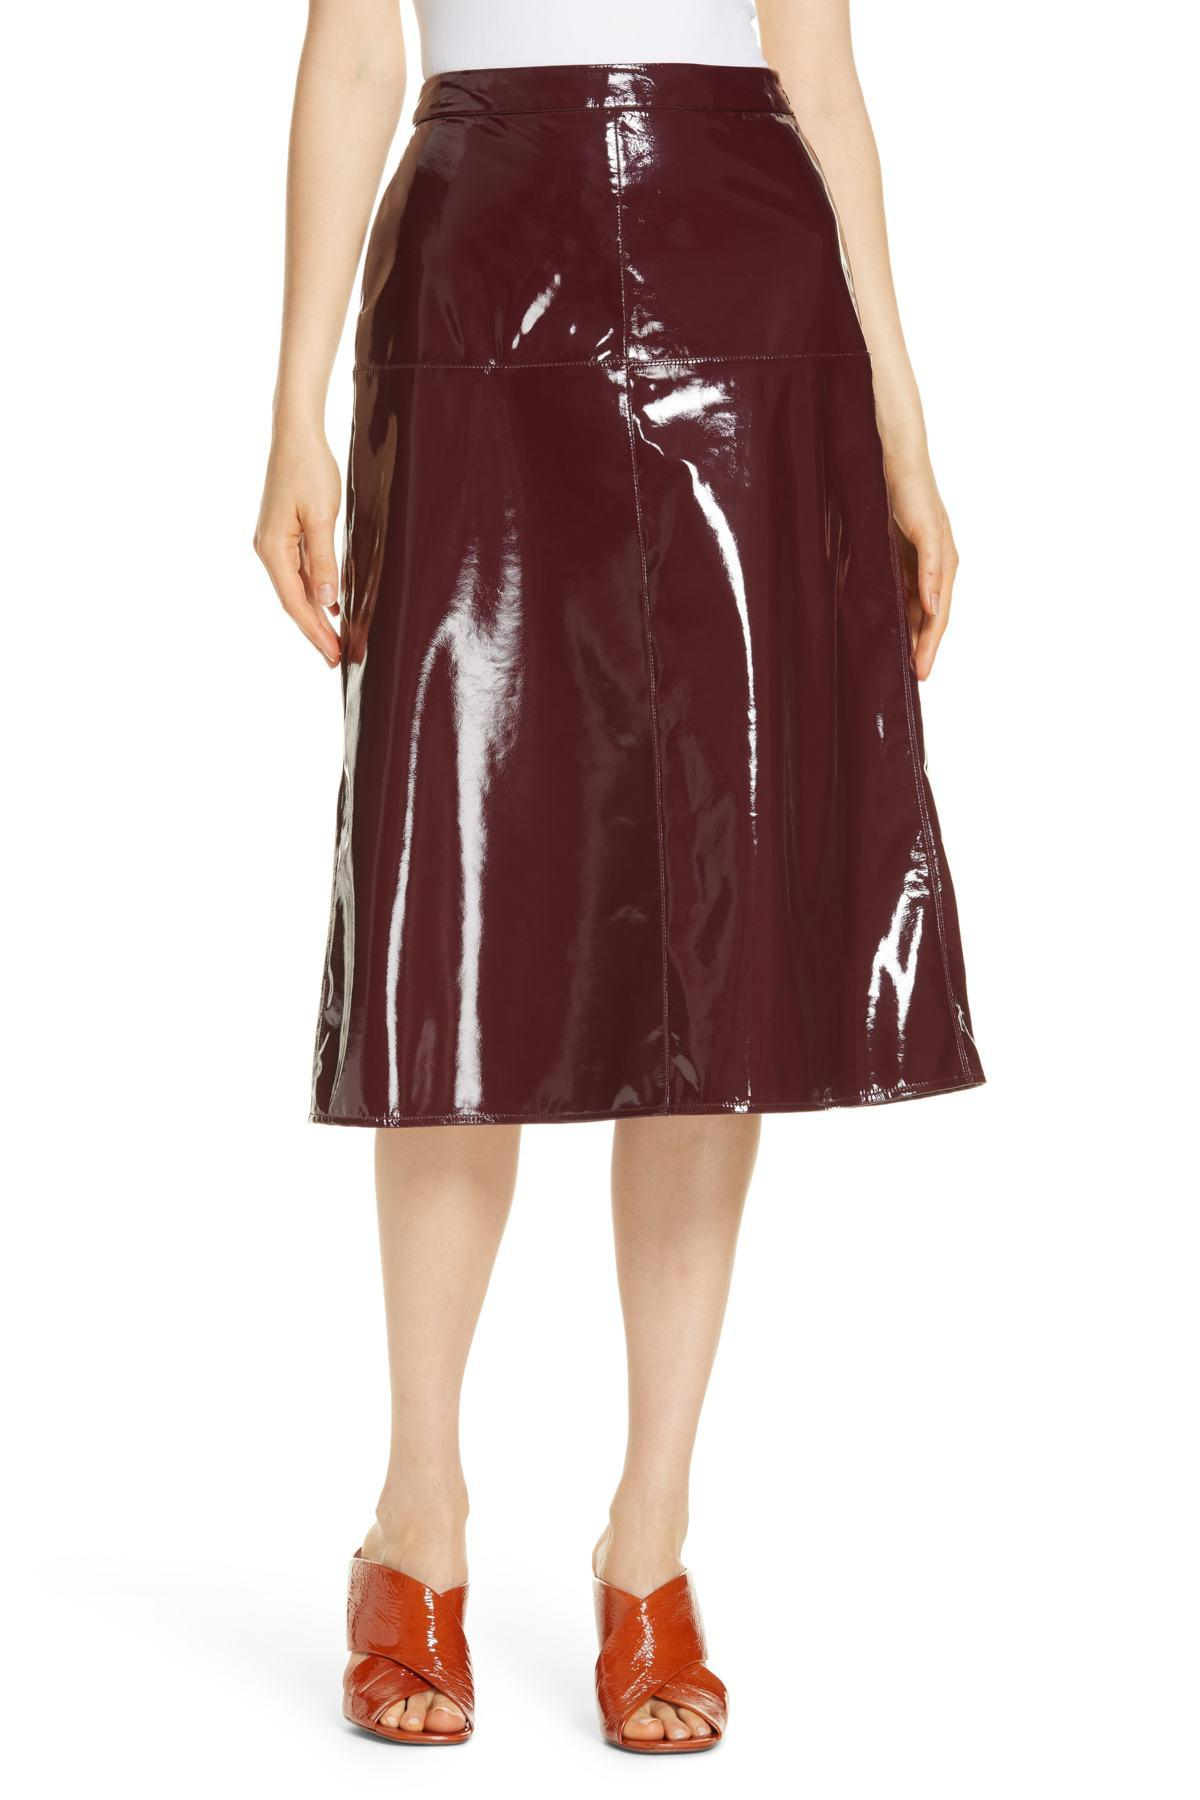 49ce0e54b3 LEWIT Patent Leather Midi Skirt in Red - Lyst